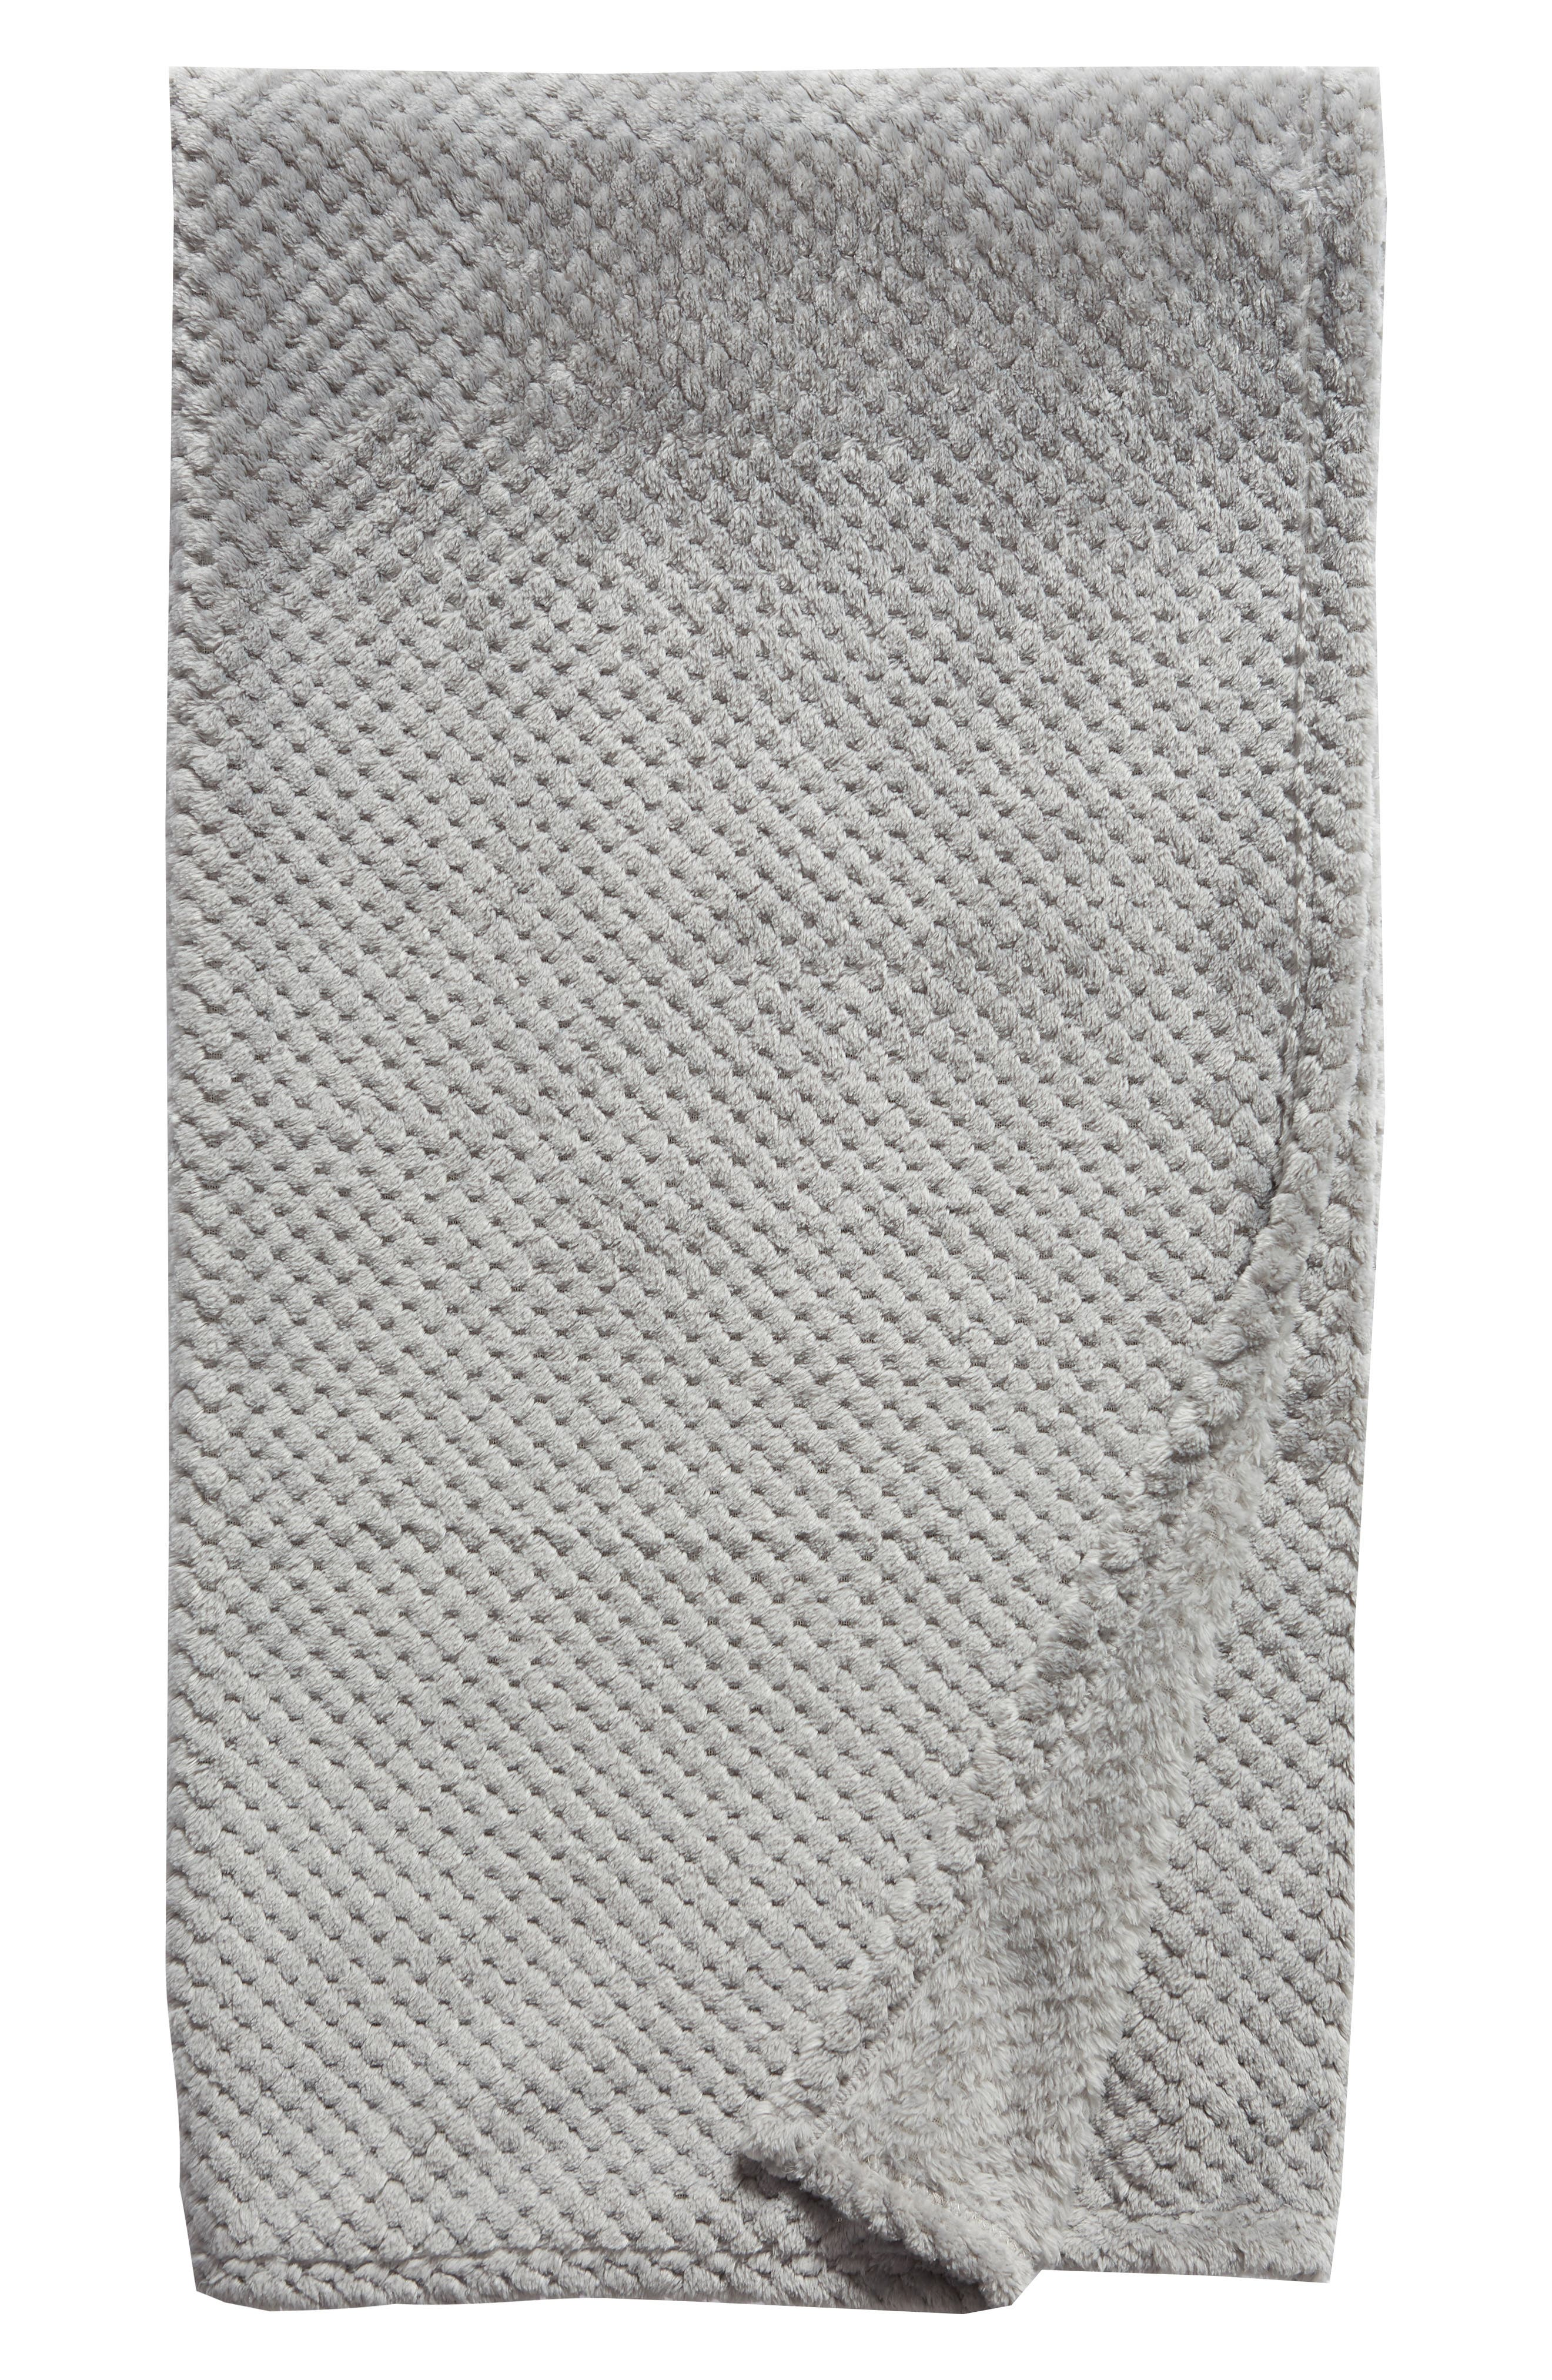 NORDSTROM AT HOME, Waffle Plush Throw Blanket, Main thumbnail 1, color, GREY FROST